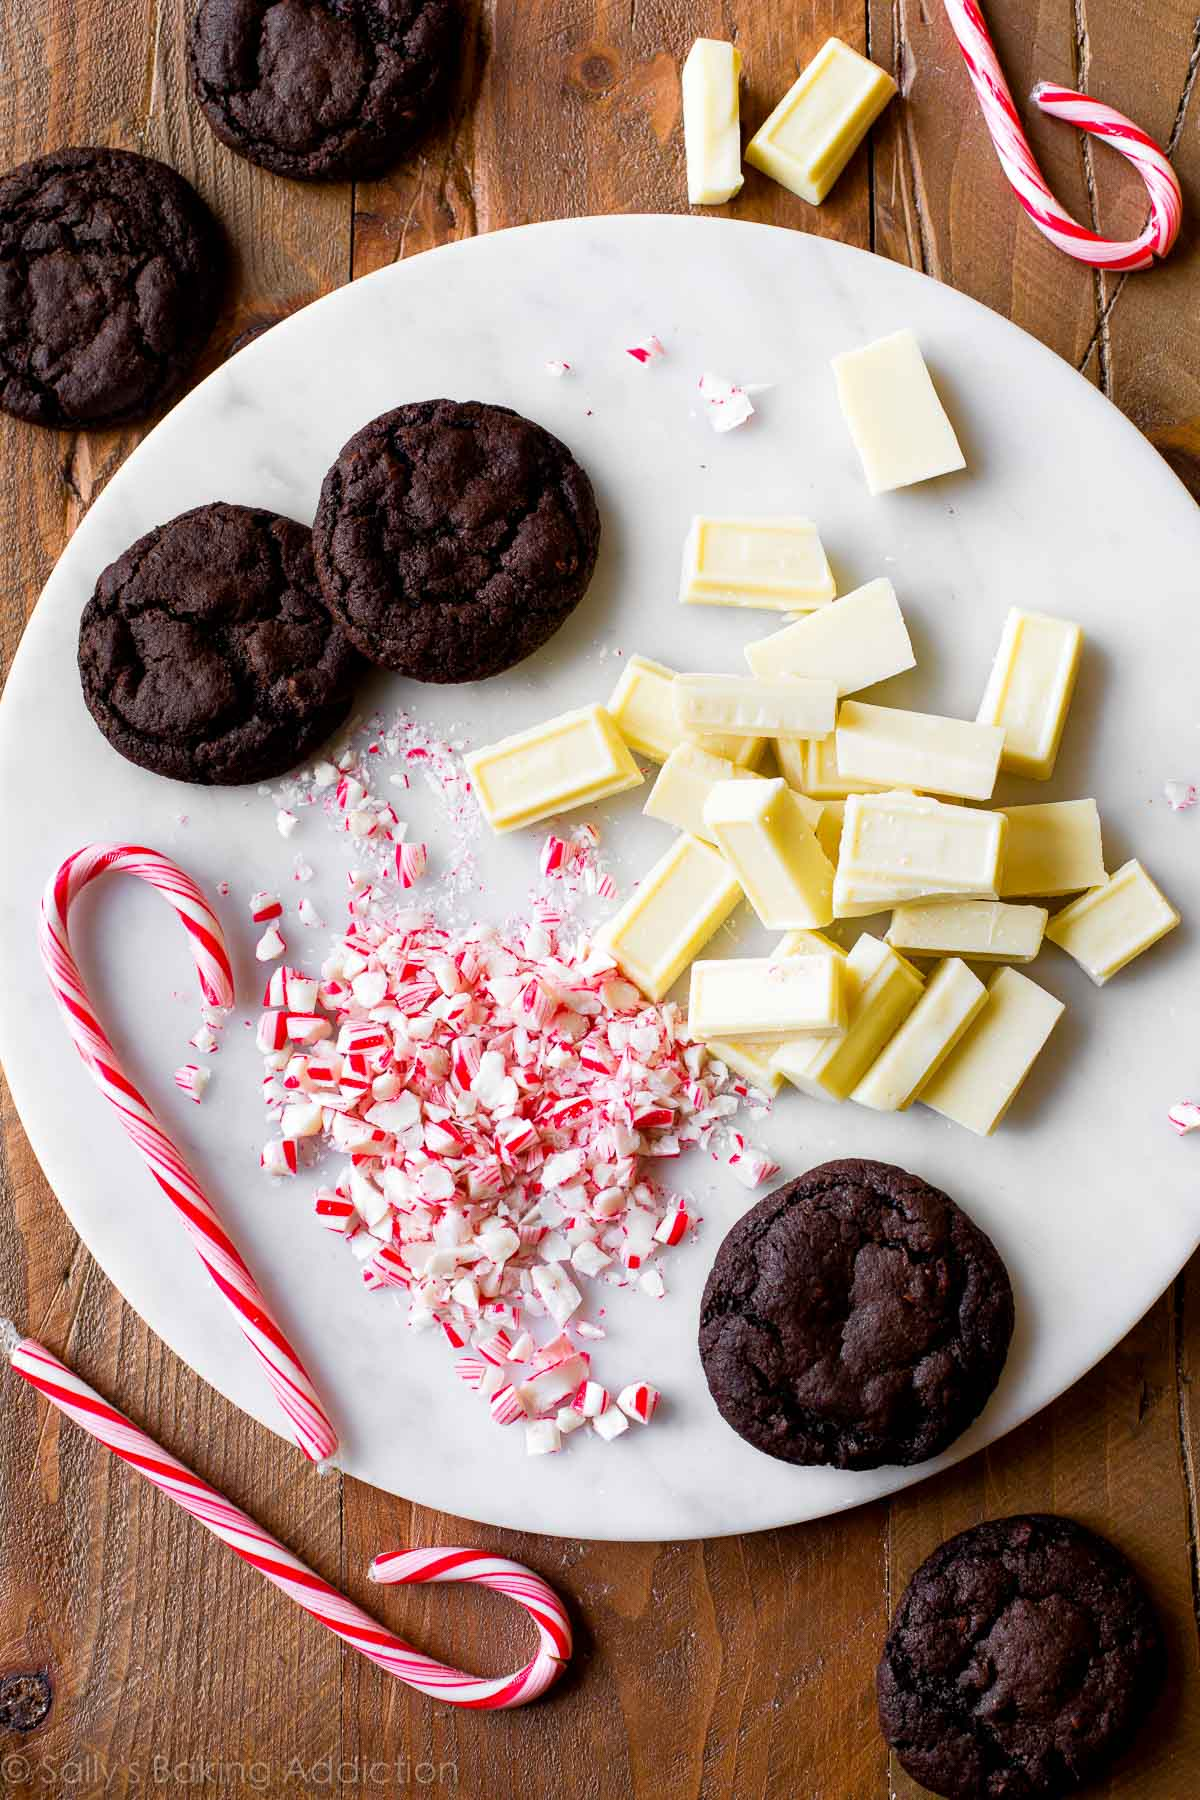 Soft-baked and chewy peppermint mocha cookies! The candy cane crunch and white chocolate put them over the top! Recipe on sallysbakingaddiction.com